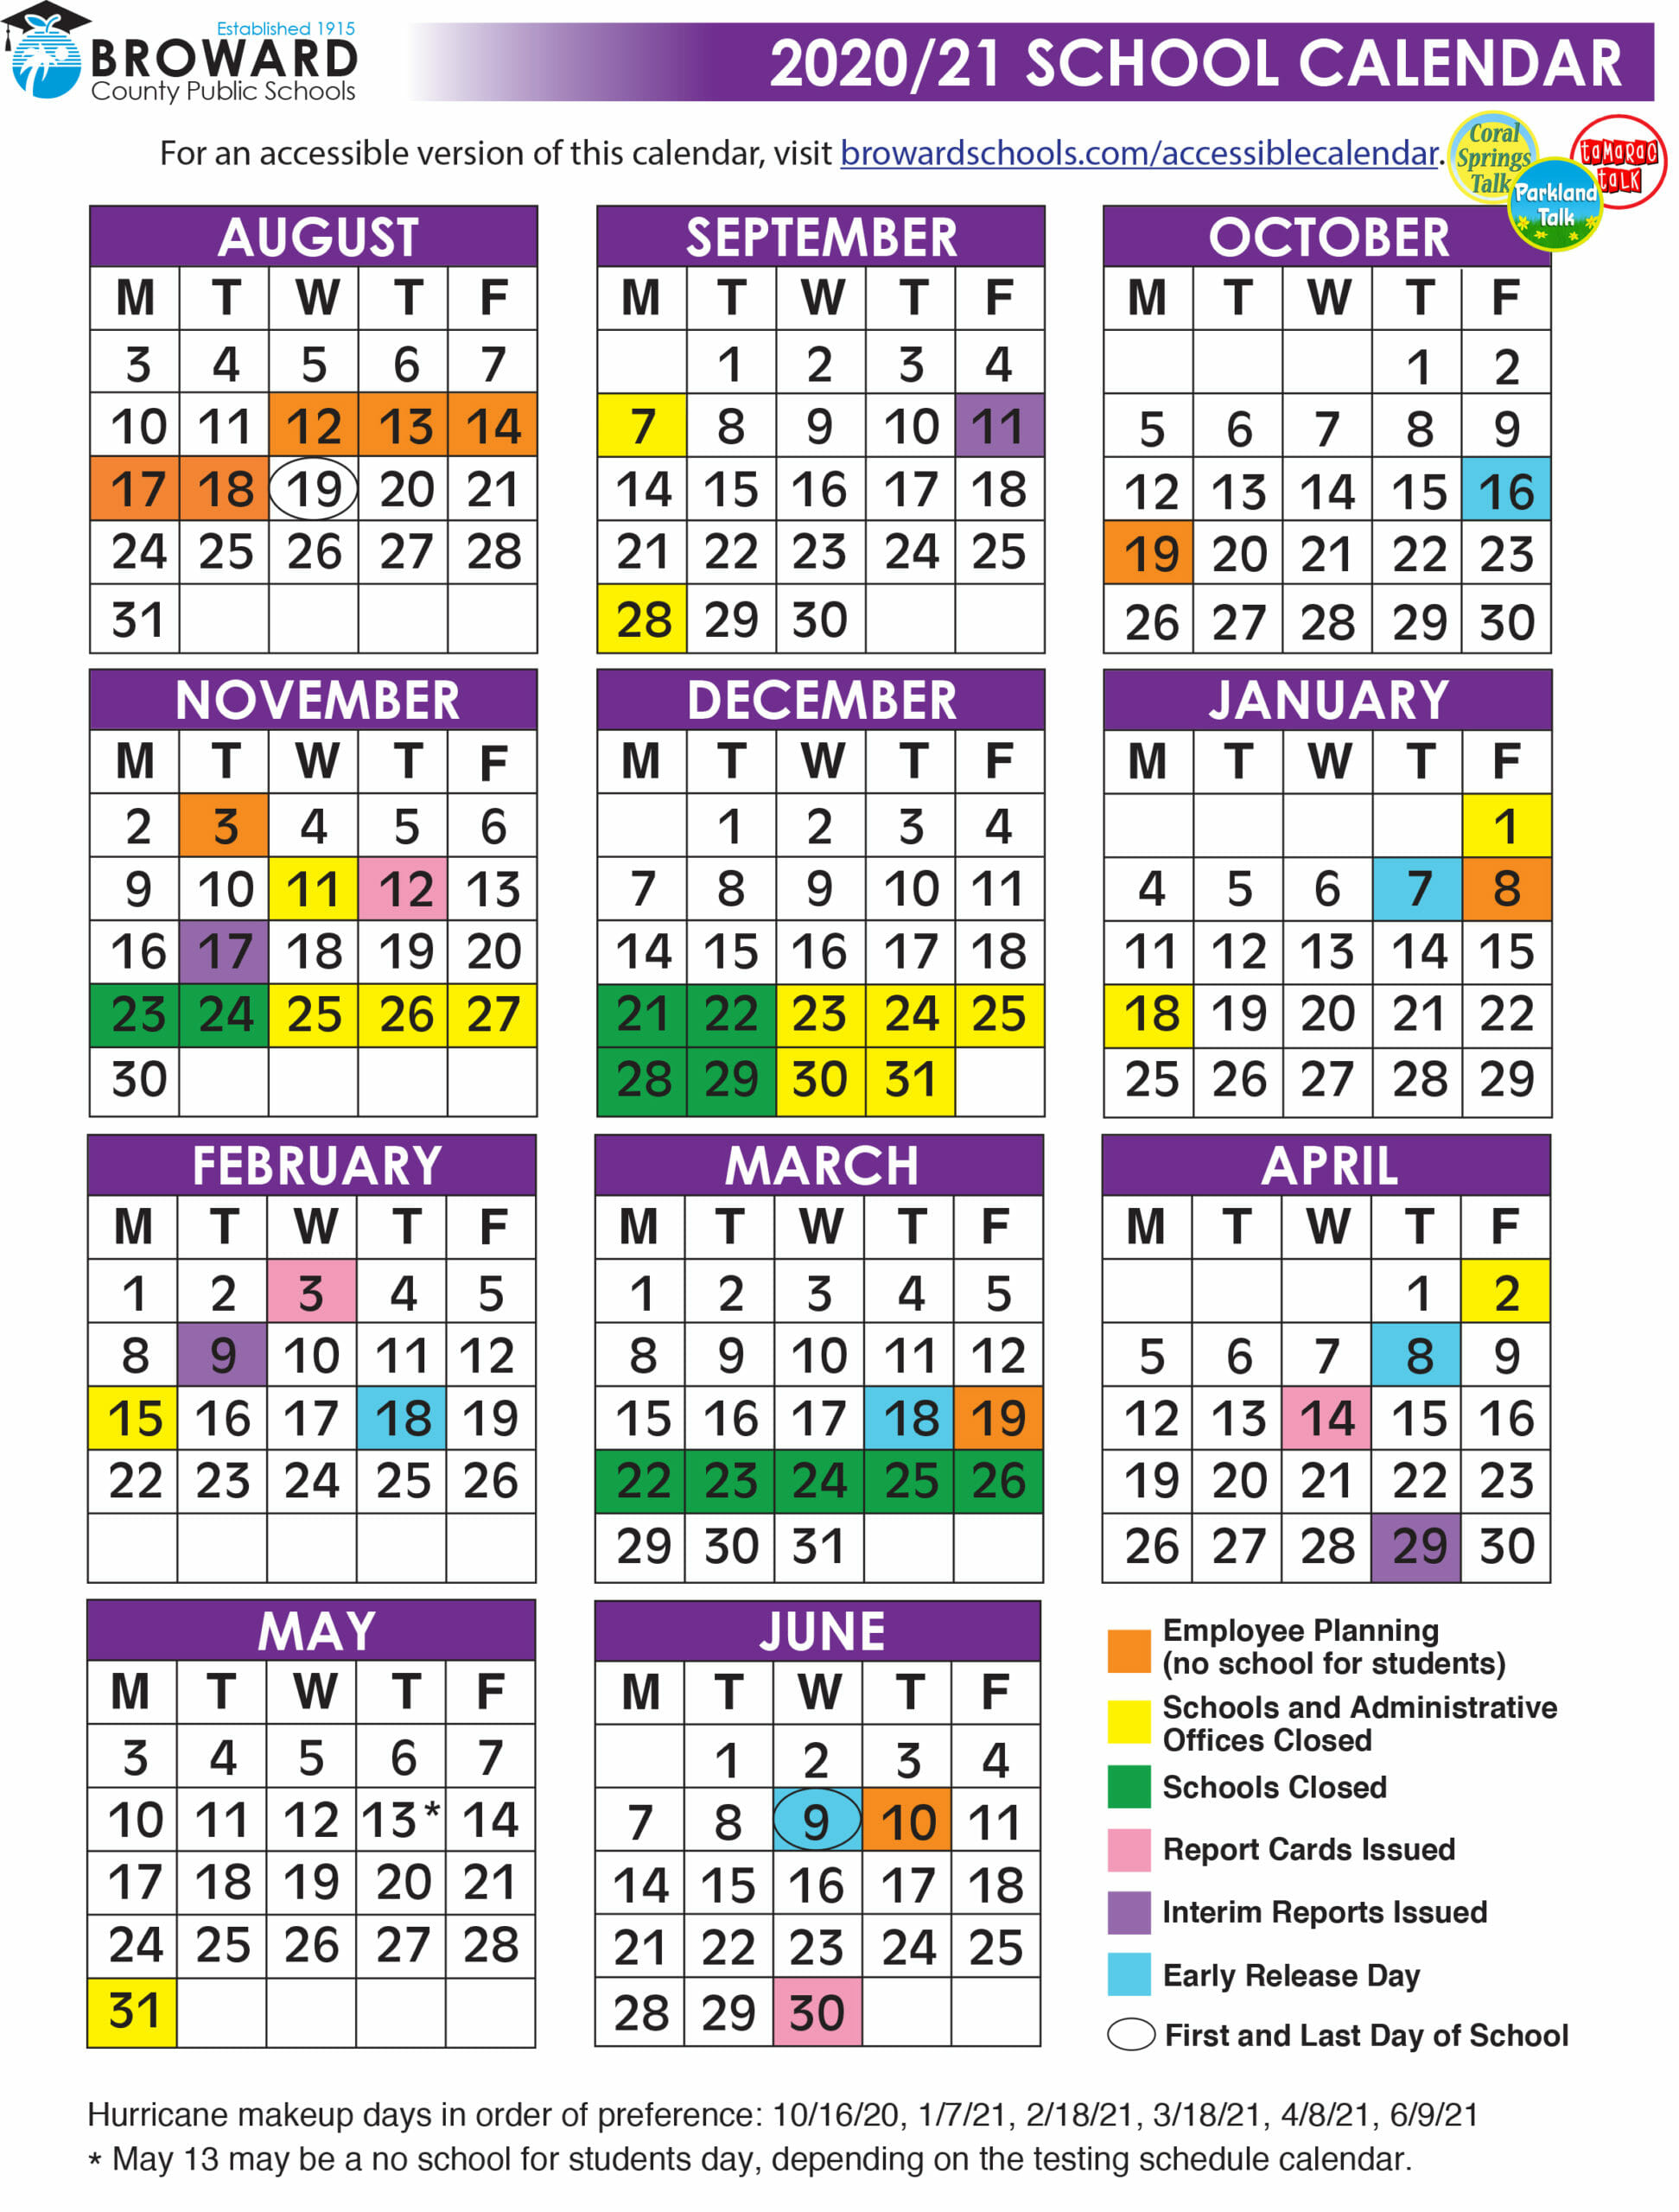 Broward County School Calendar 2021 22 | Important Update | County